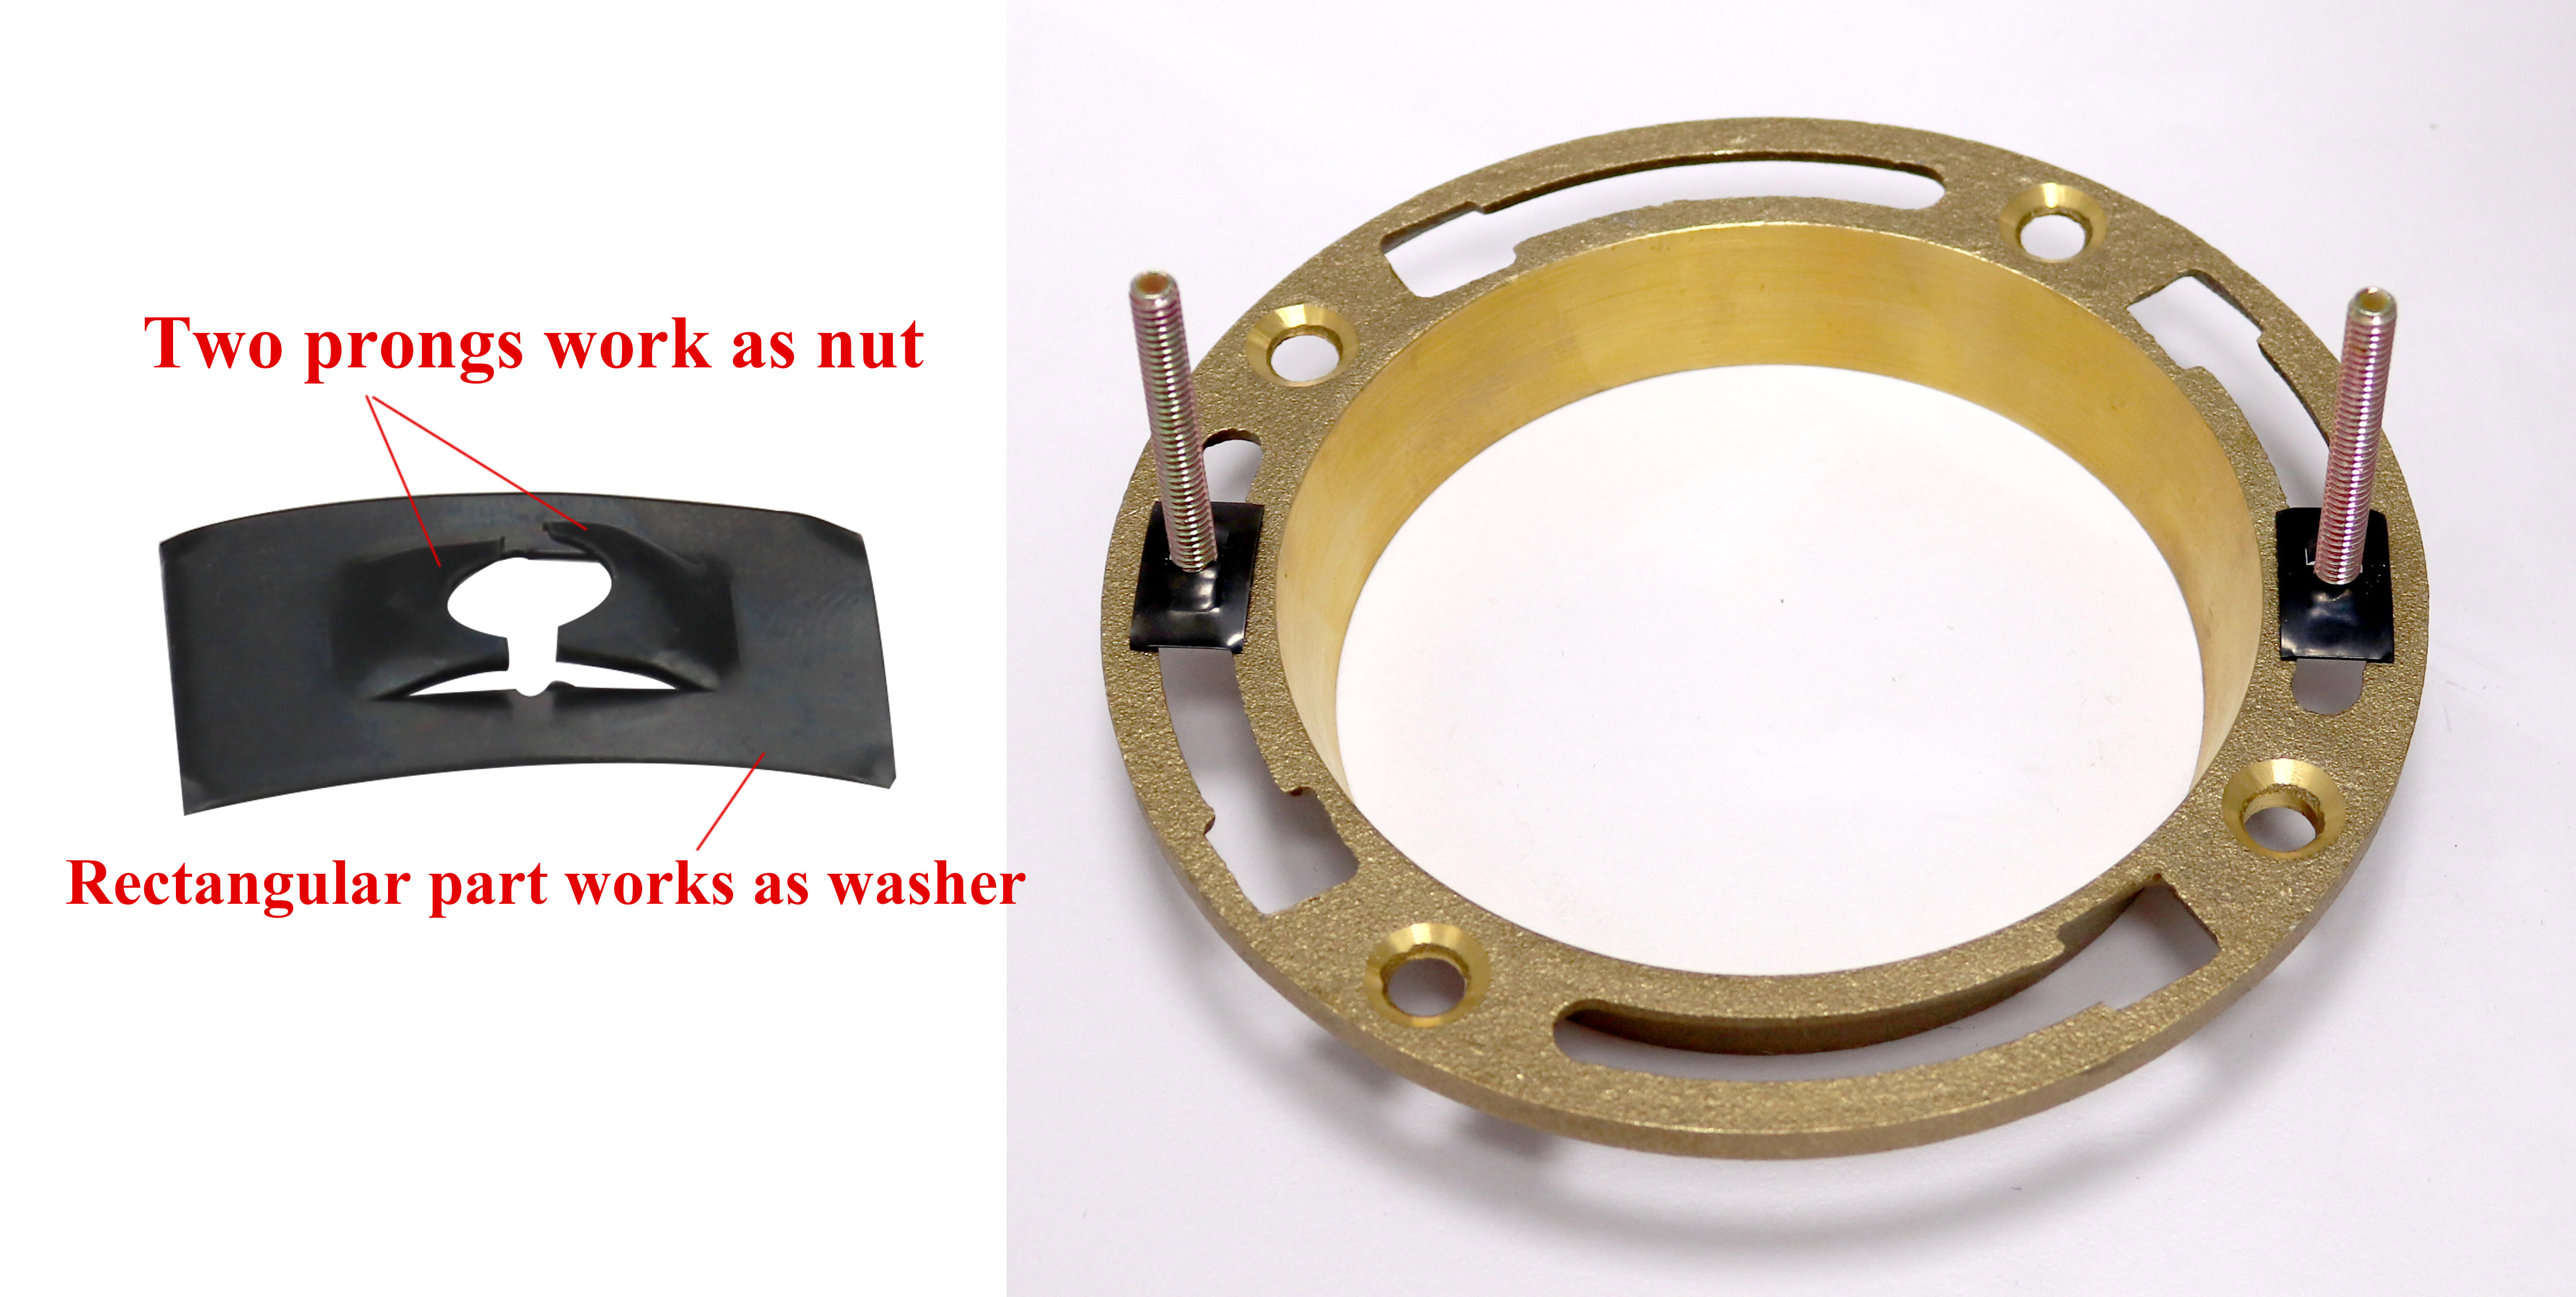 conf B-toilet flange fix with speed nut